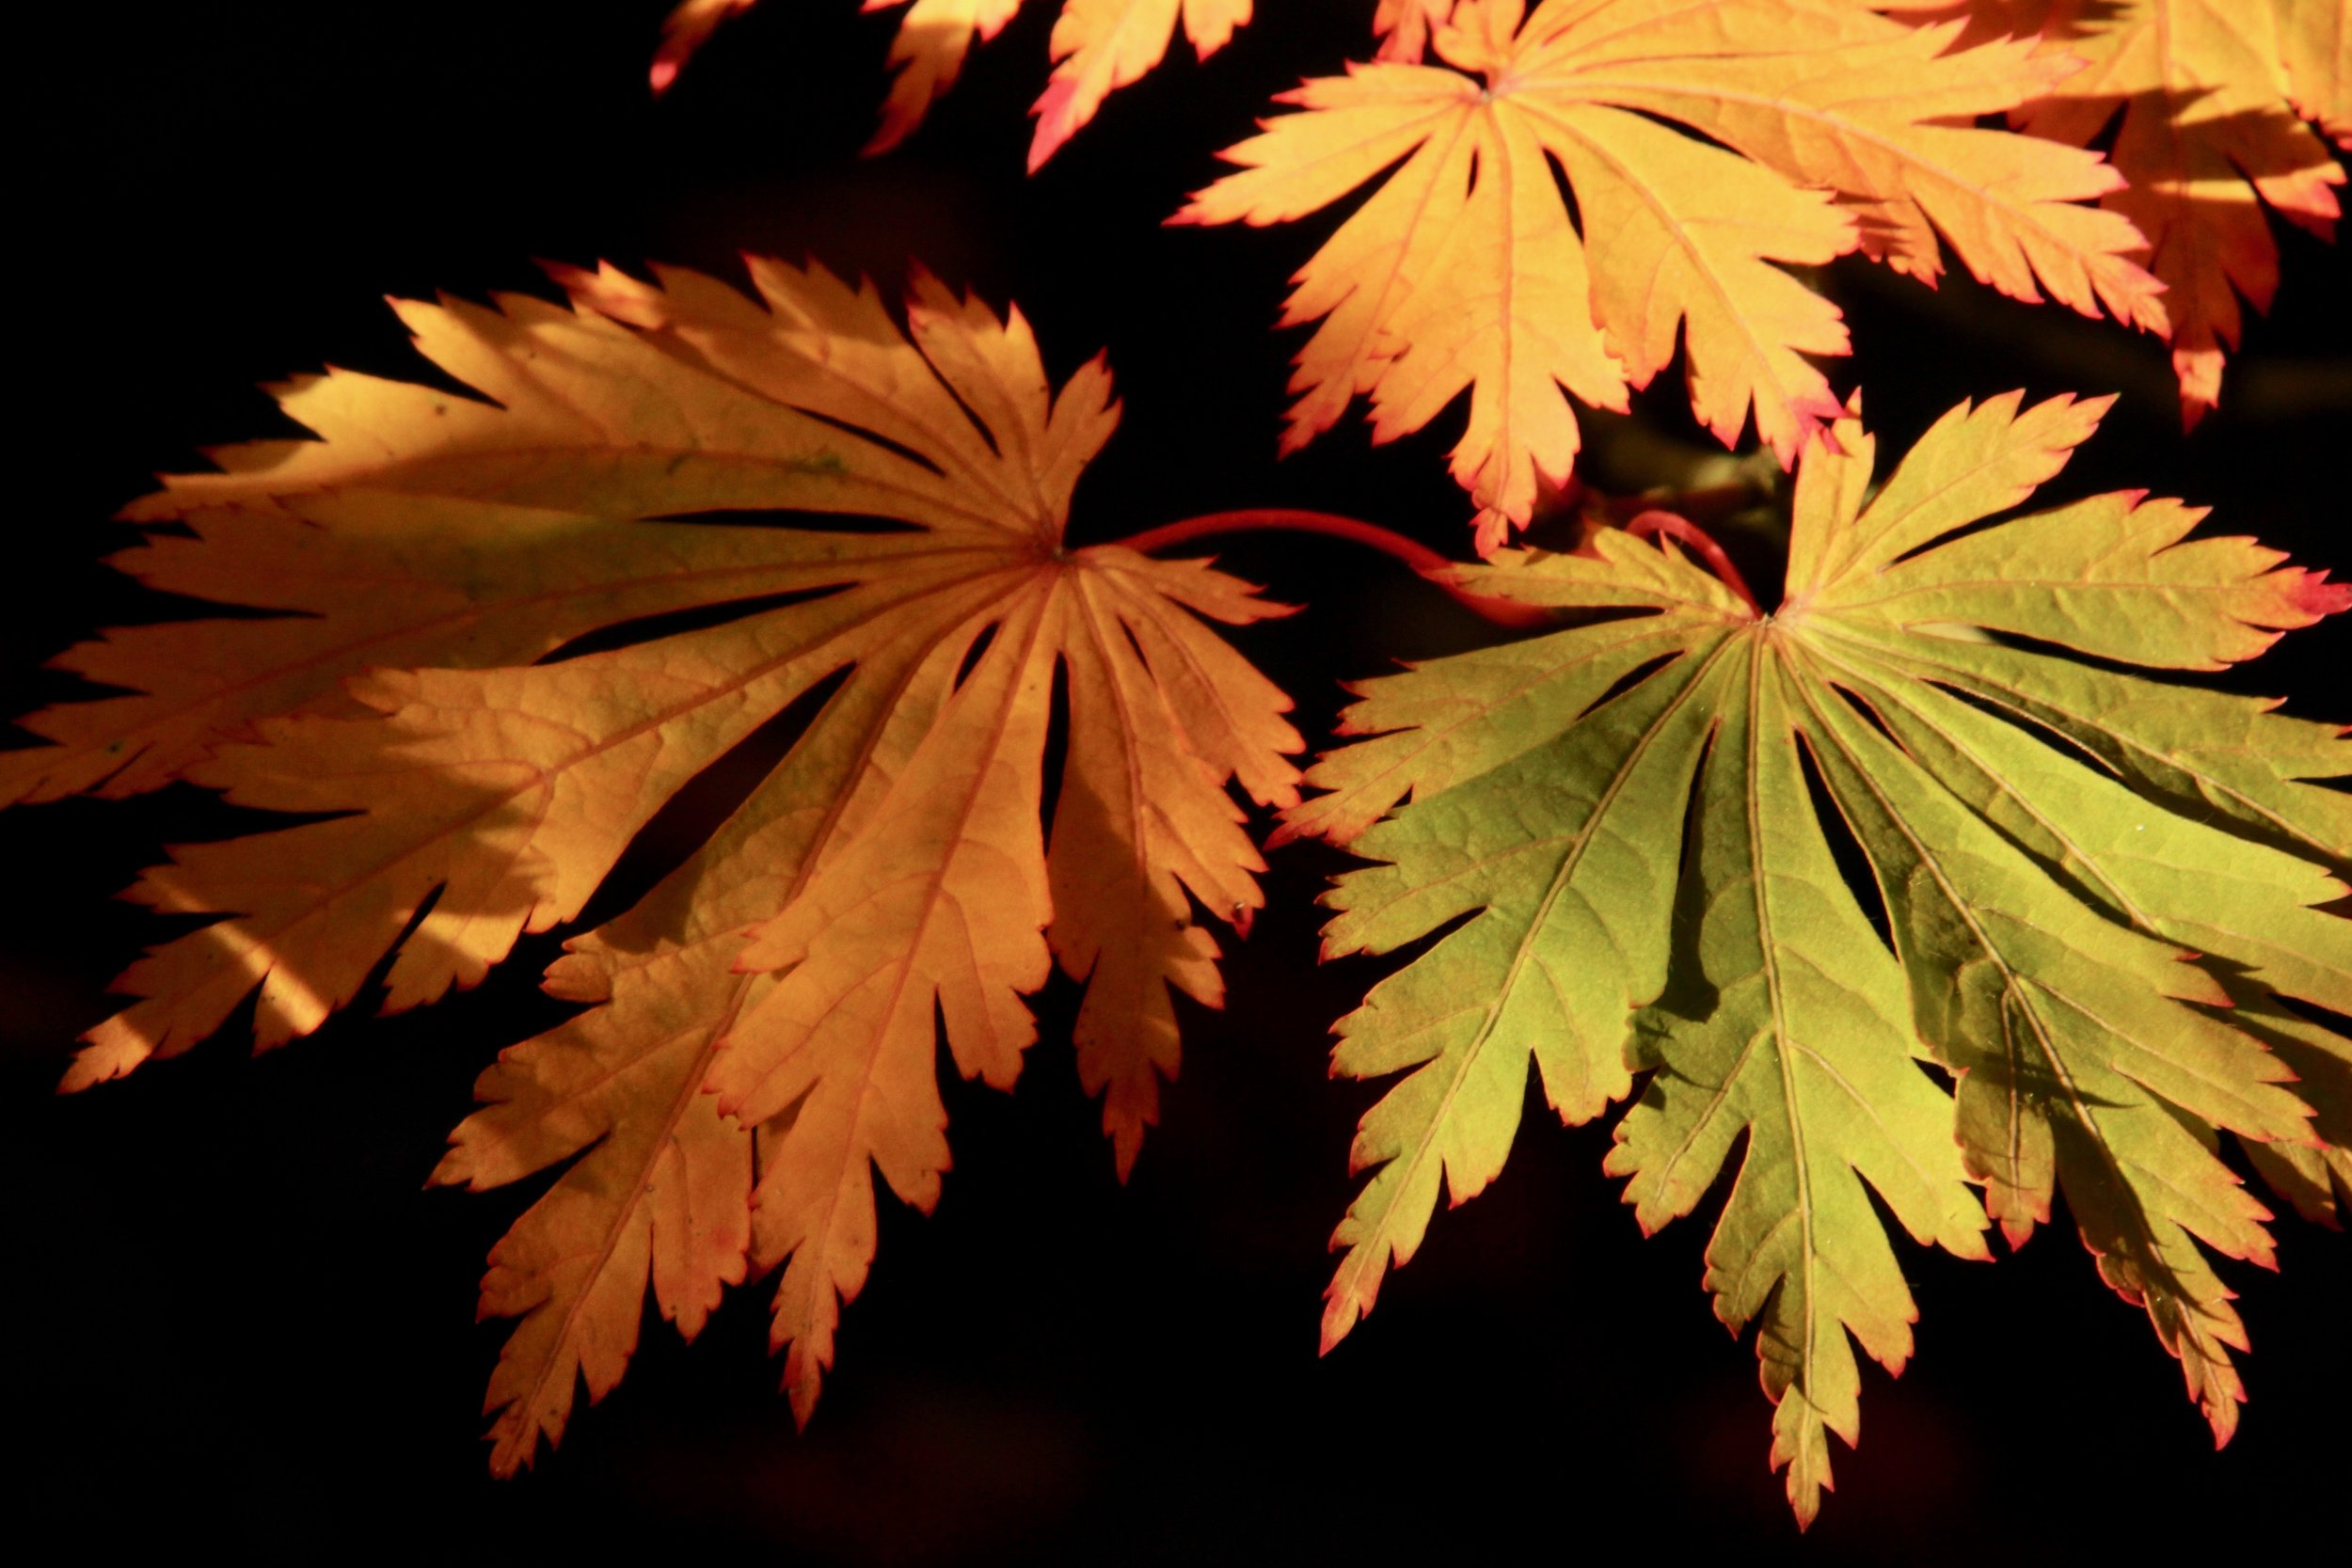 Autumn leaves of Dancing Peacock Maple (Acer japonicum 'Aconitifolium'). Photo by Mary Ann Cahill.